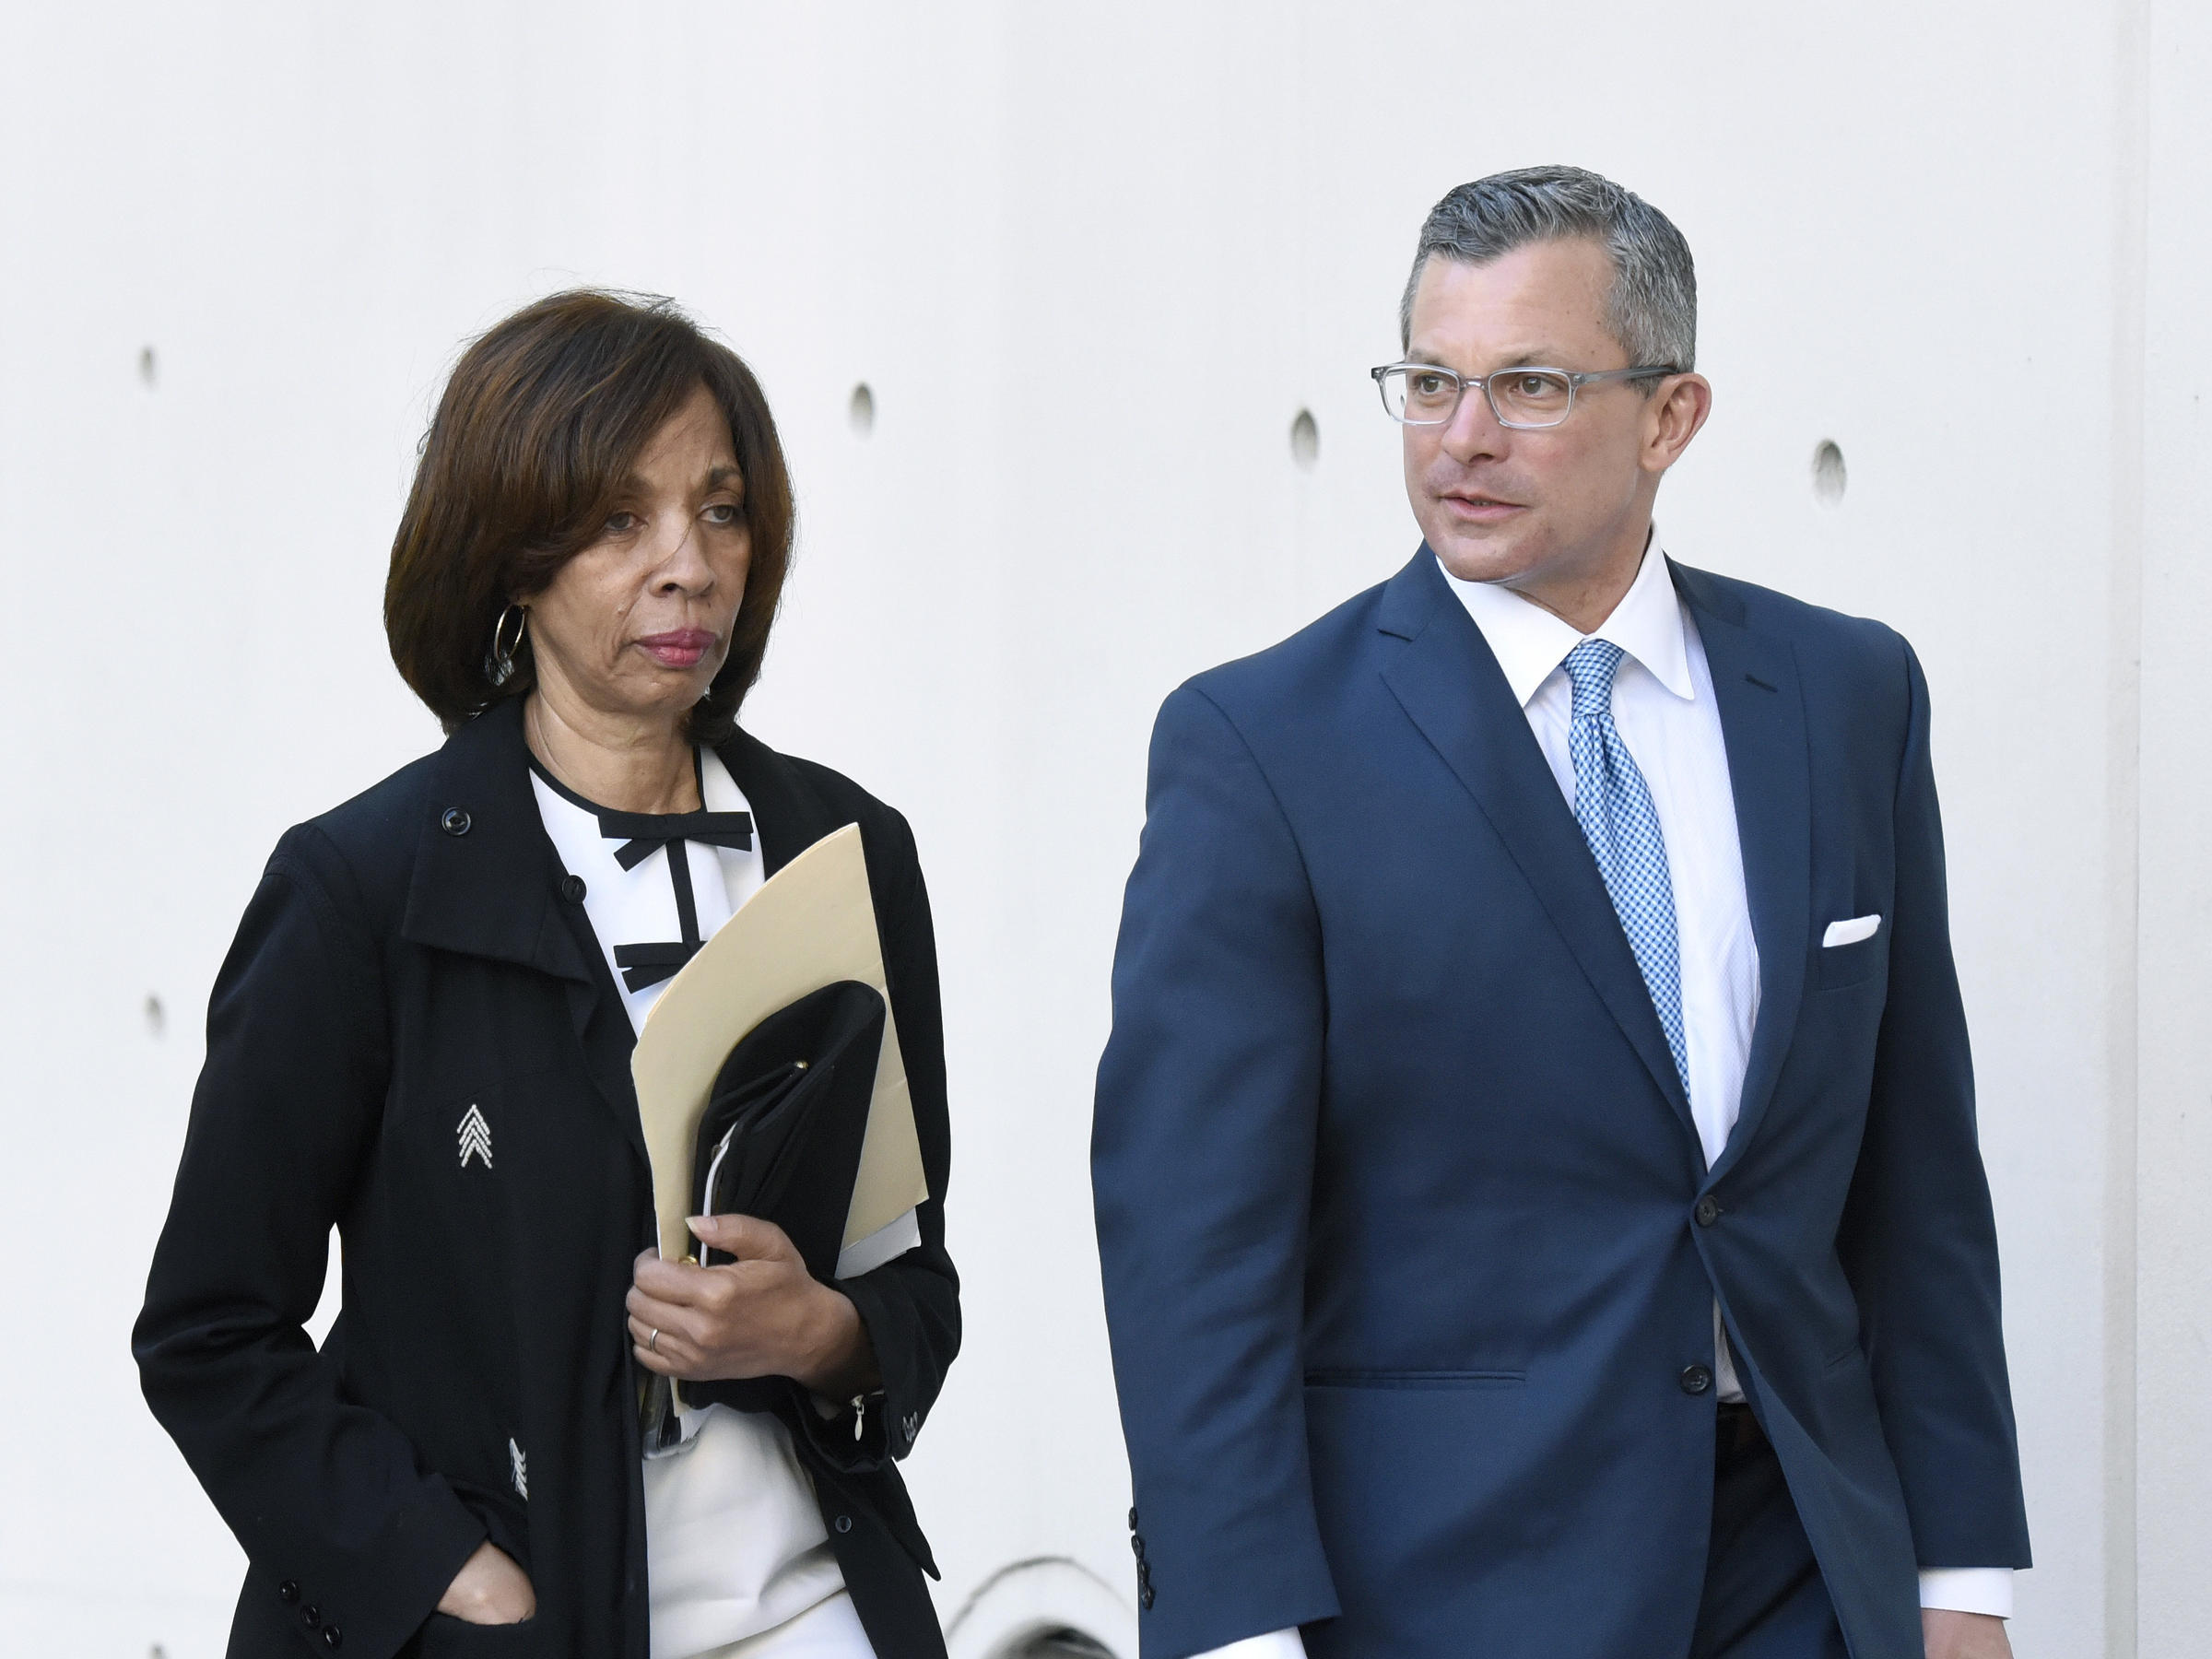 Ex-Baltimore Mayor To Be Sentenced For 'Healthy Holly' Children's Book Scheme